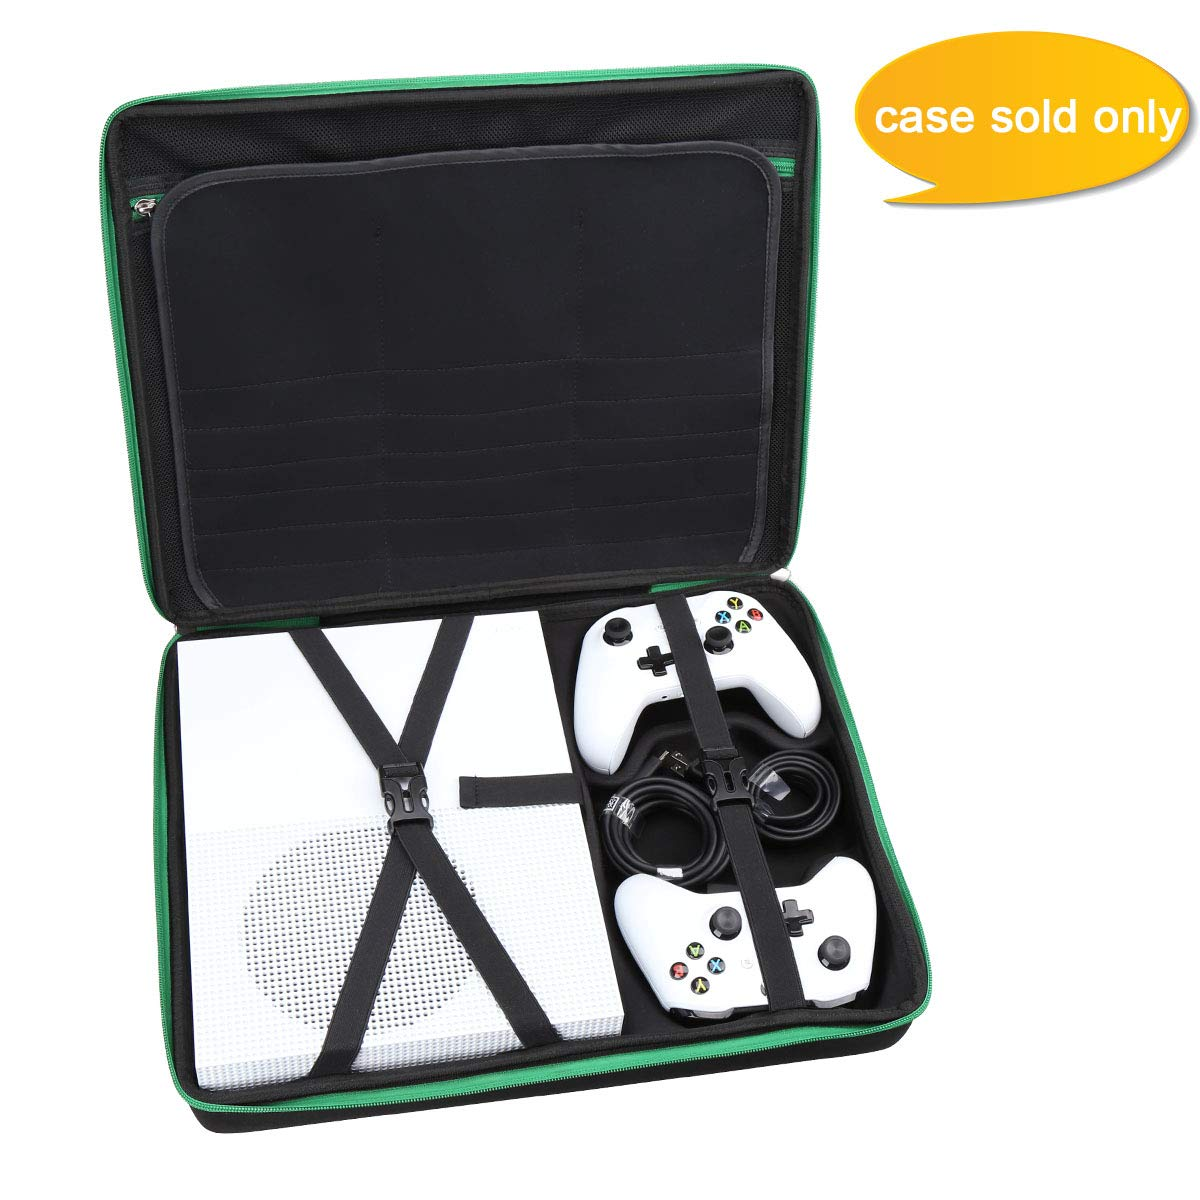 Aproca Hard Carry Travel Case Compatible with Microsoft Xbox One S 1TB Console